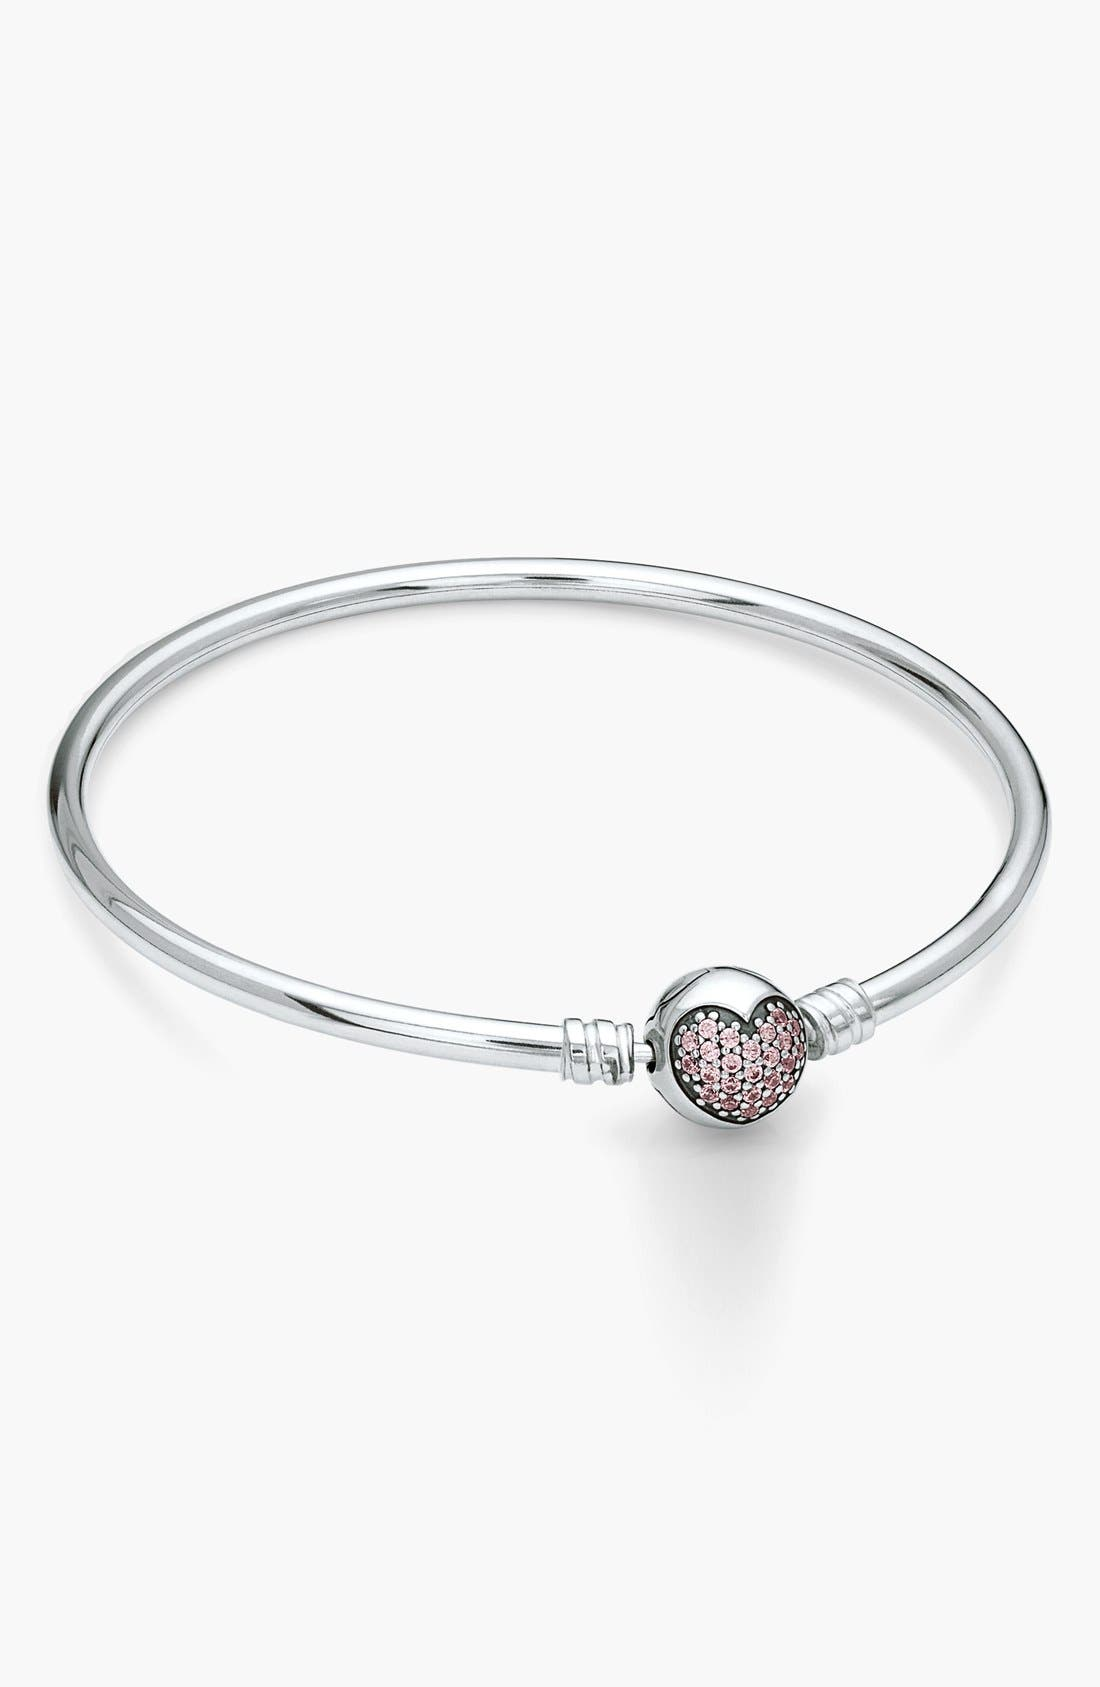 Main Image - CIRCLE OF LOVE BRACELET